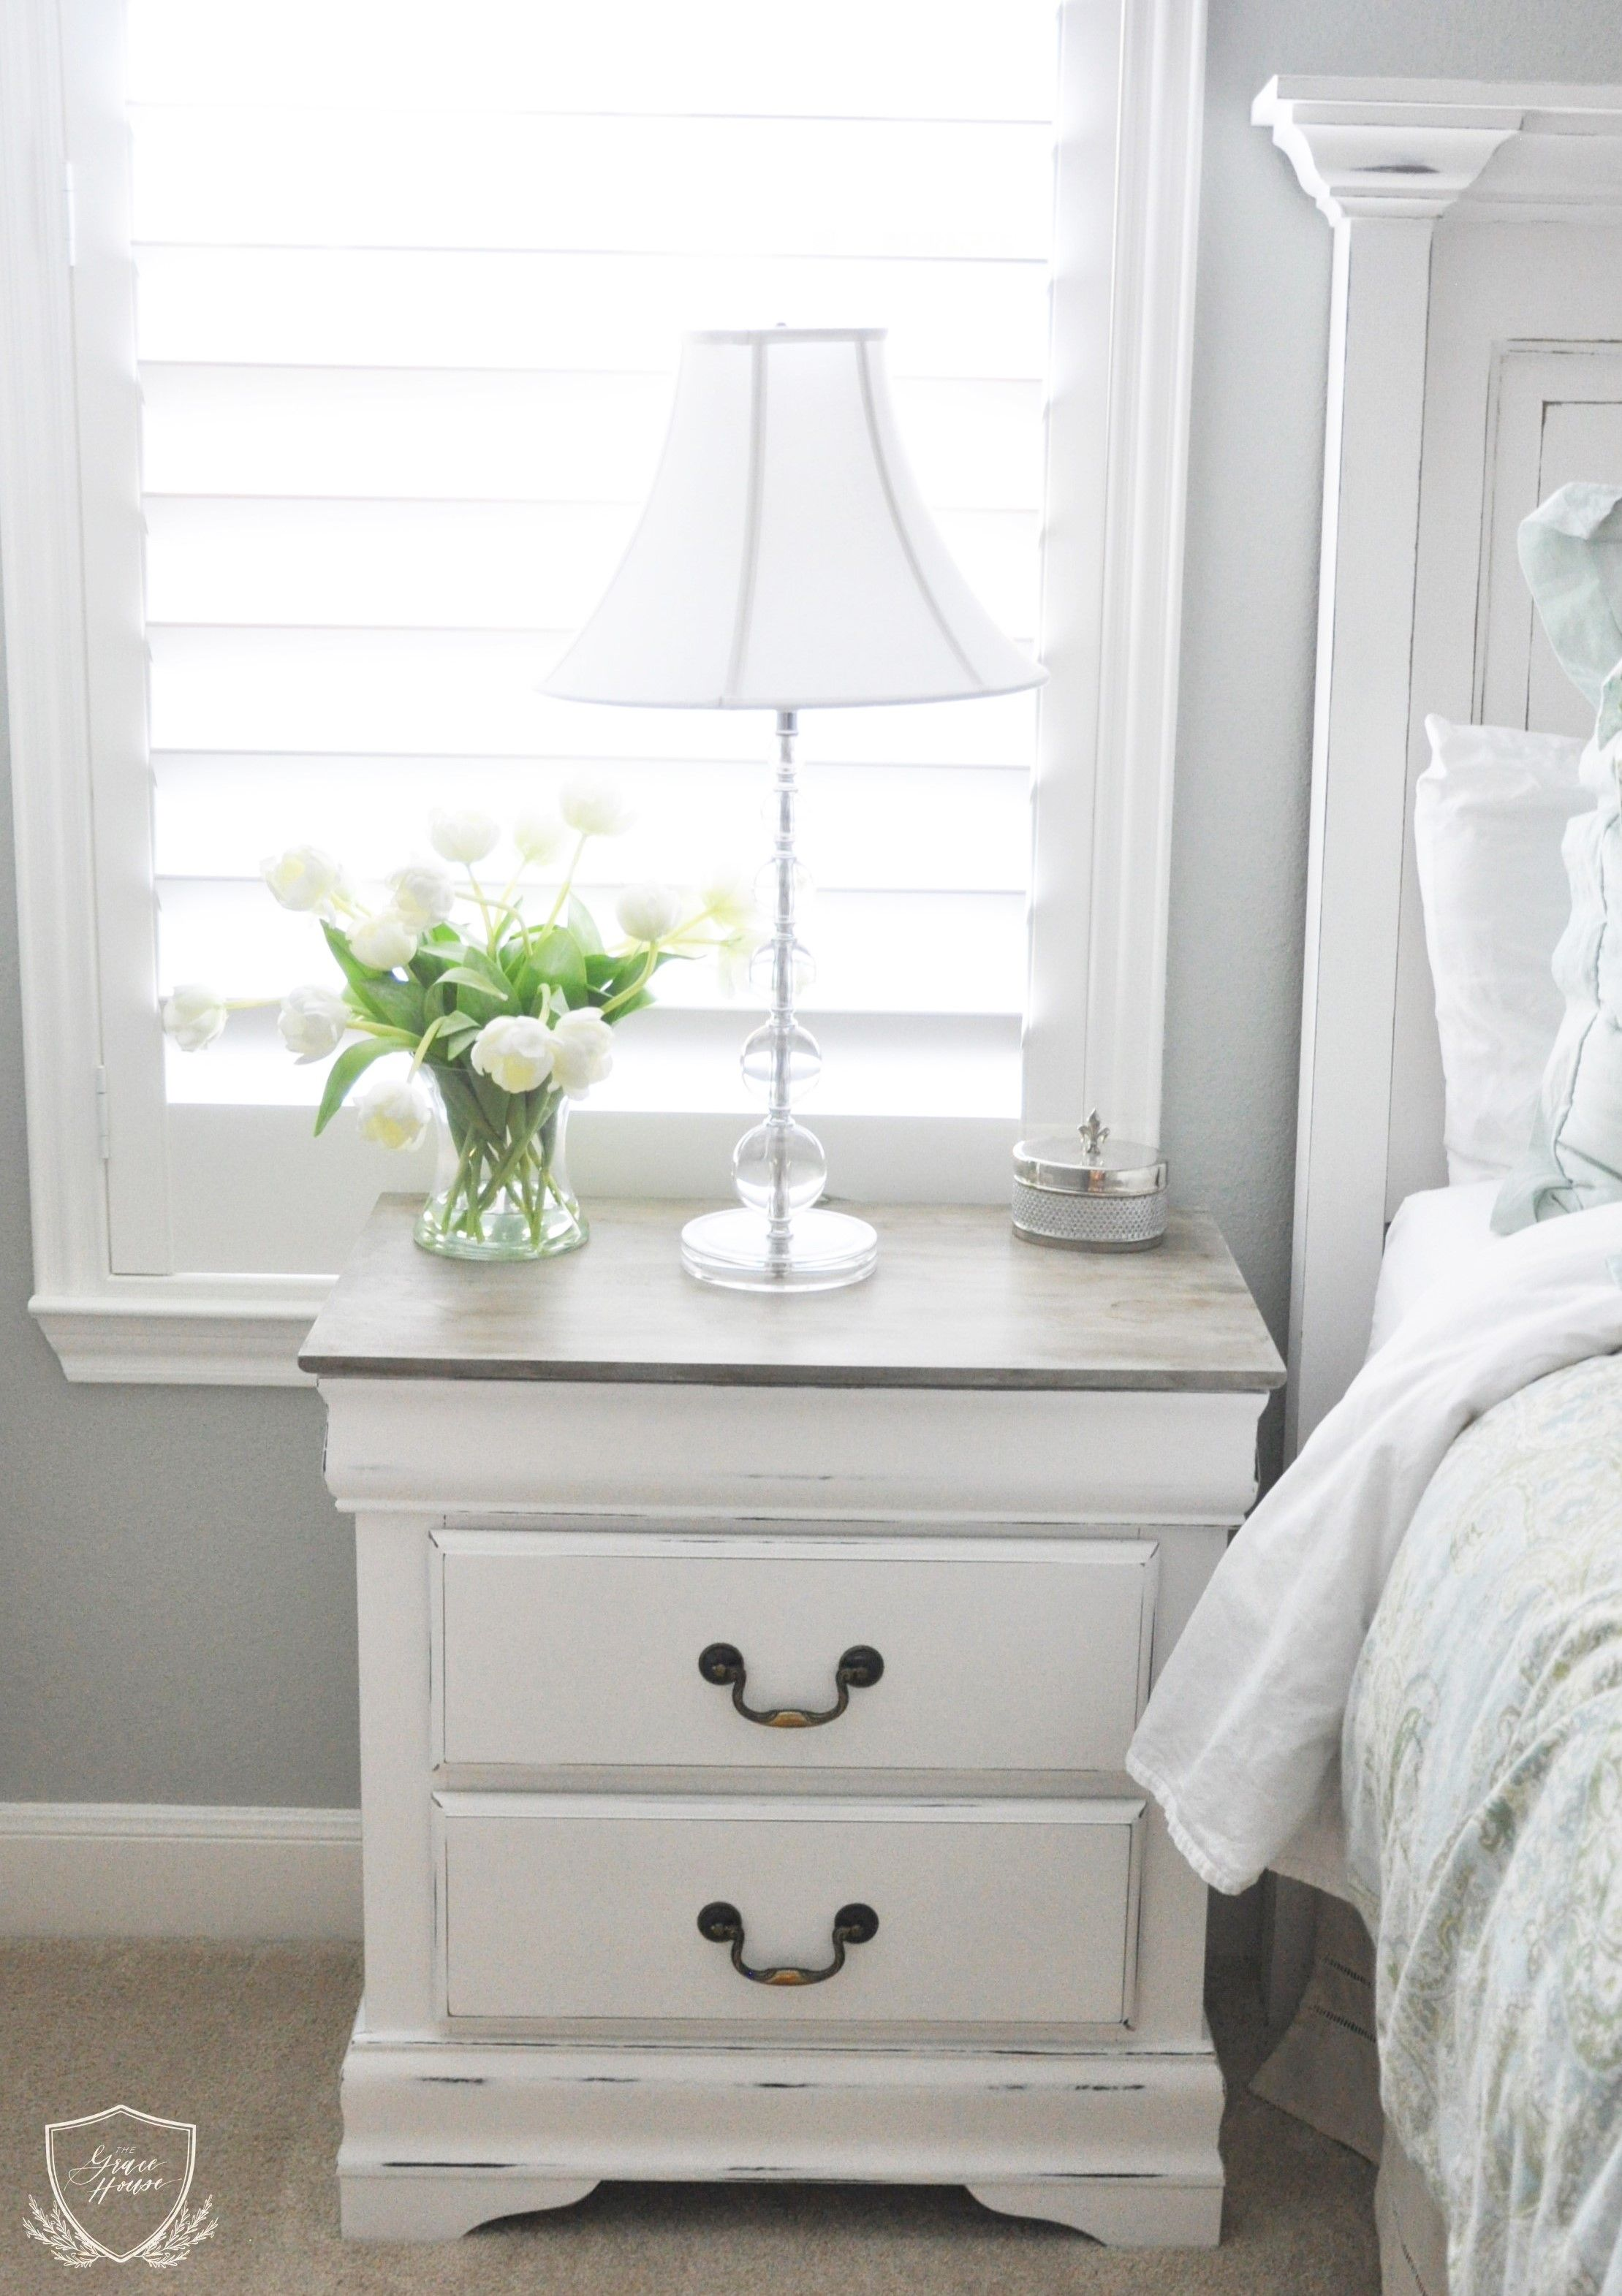 Nightstand Chalk Paint Tutorial | Bedroom Decor | Paint furniture ...